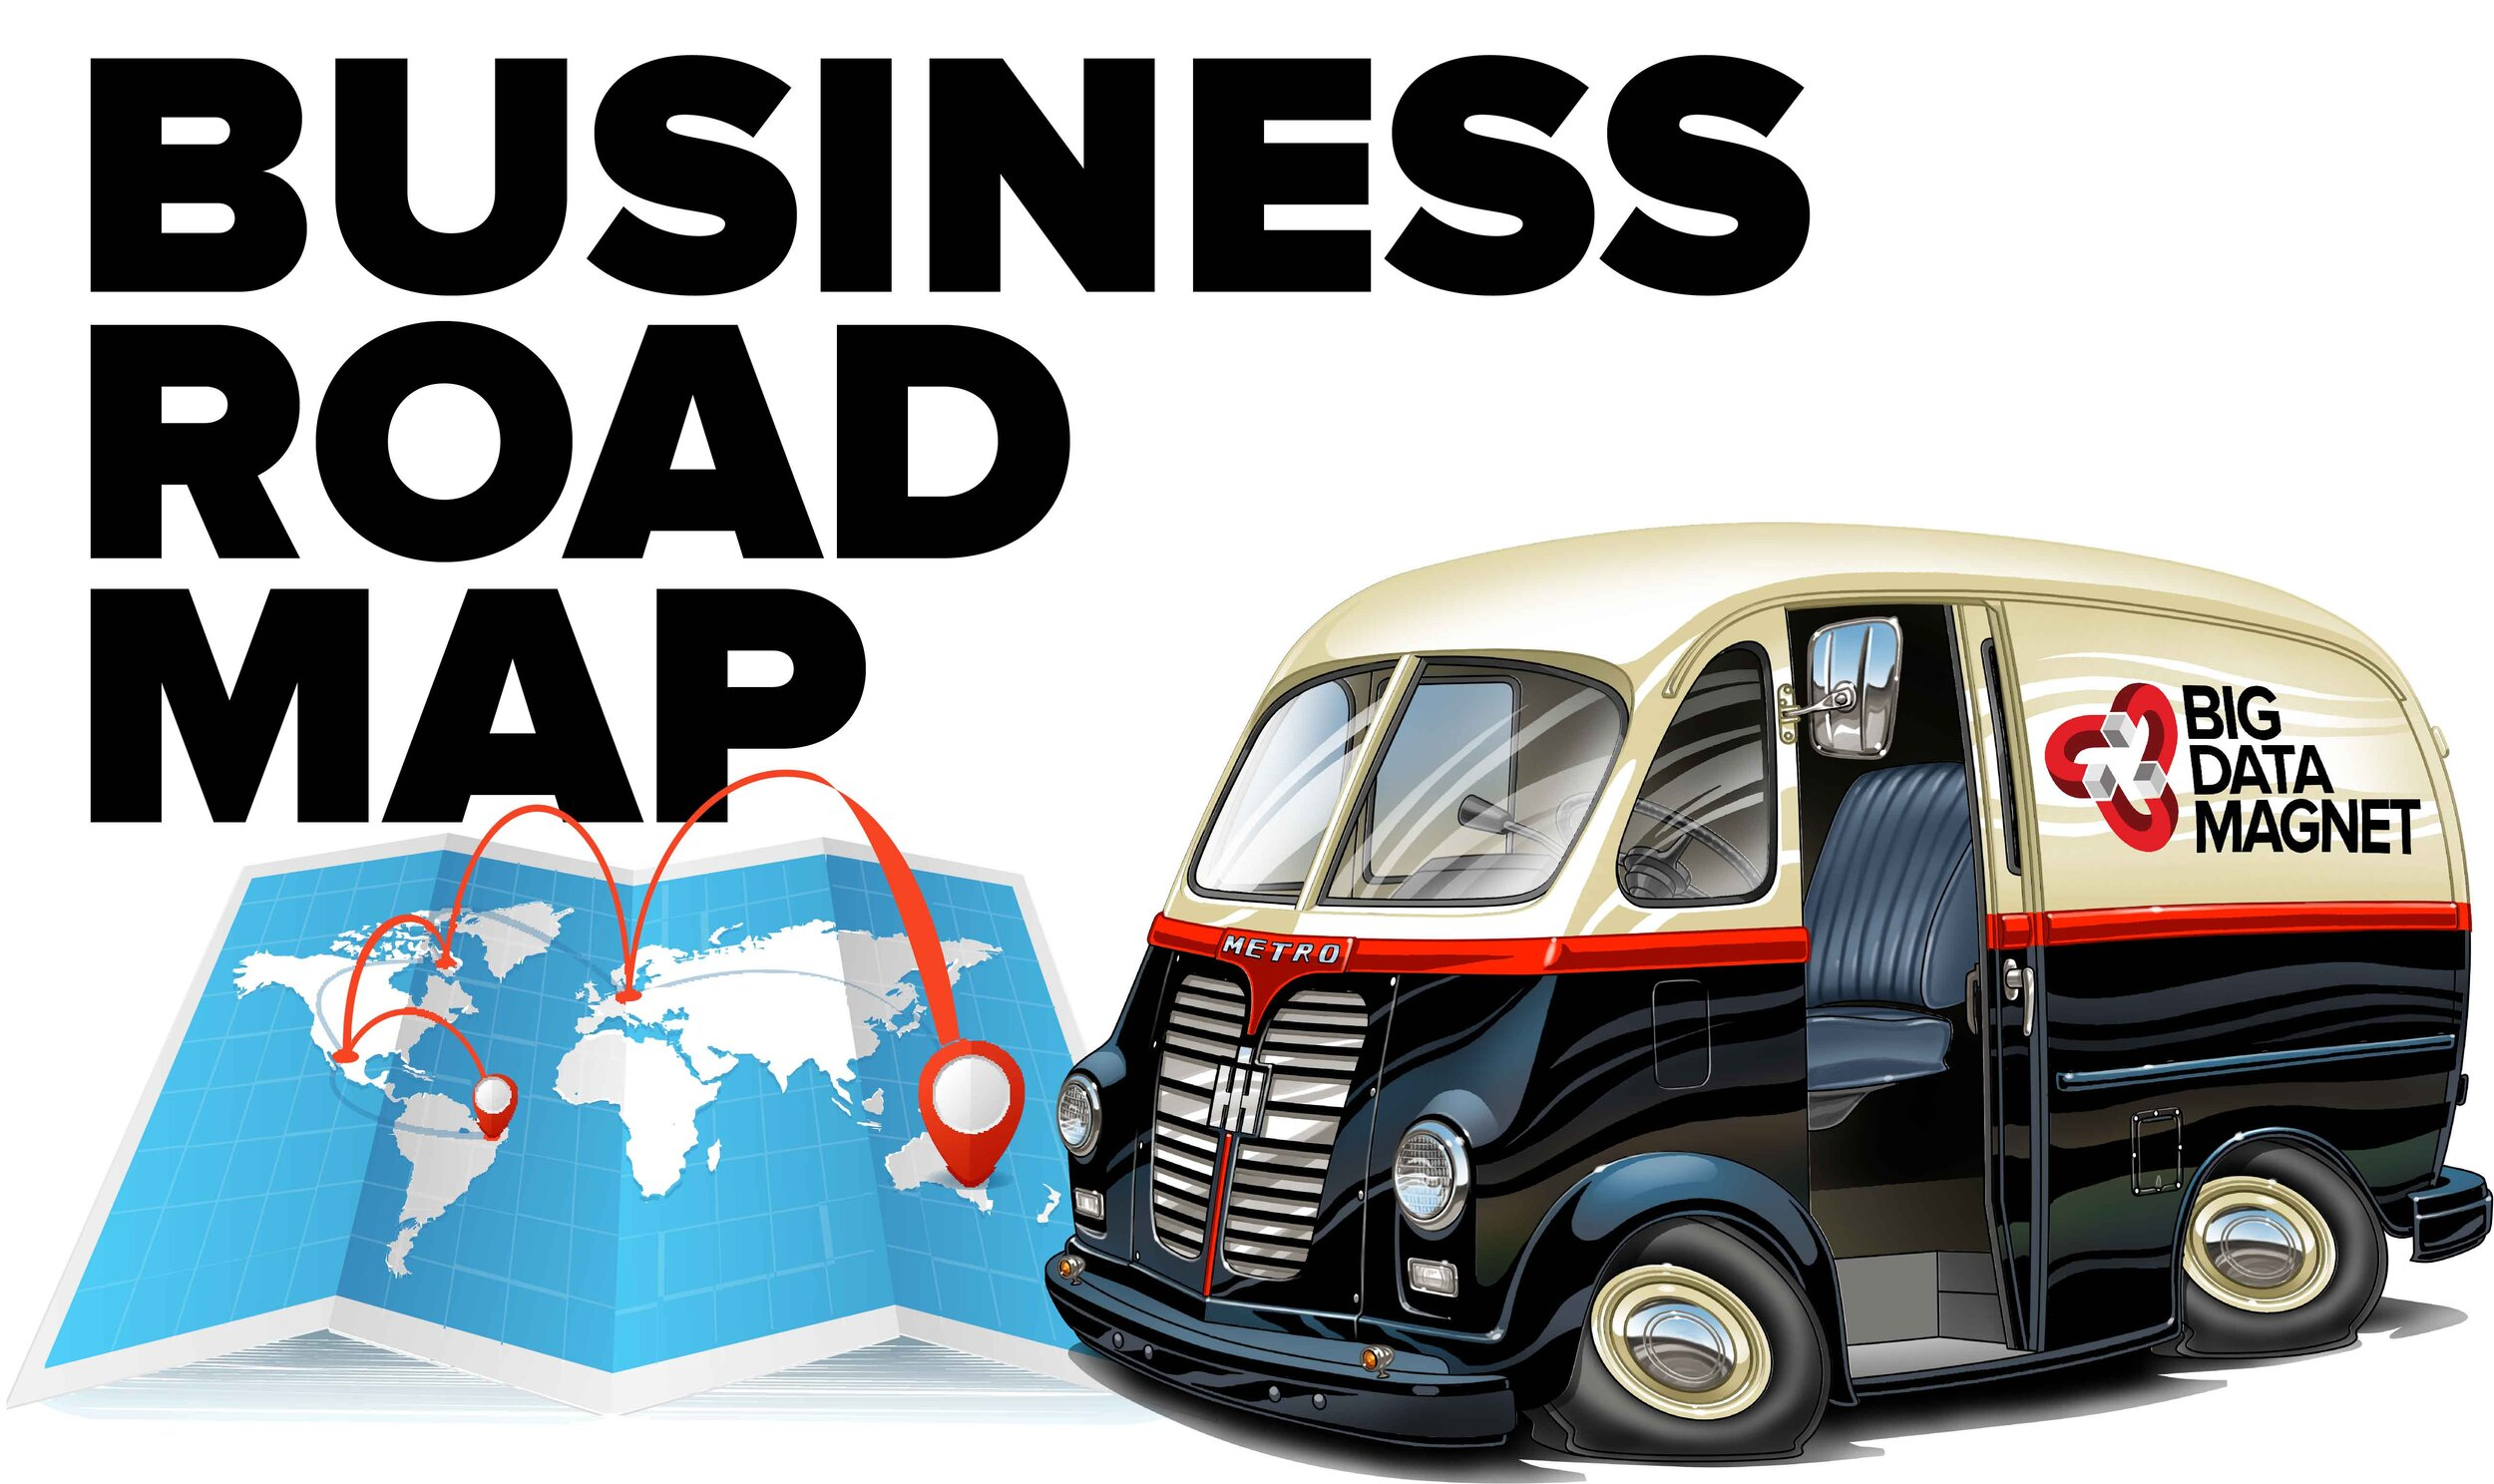 BRM BDM Business Road Map Awesome!.jpg